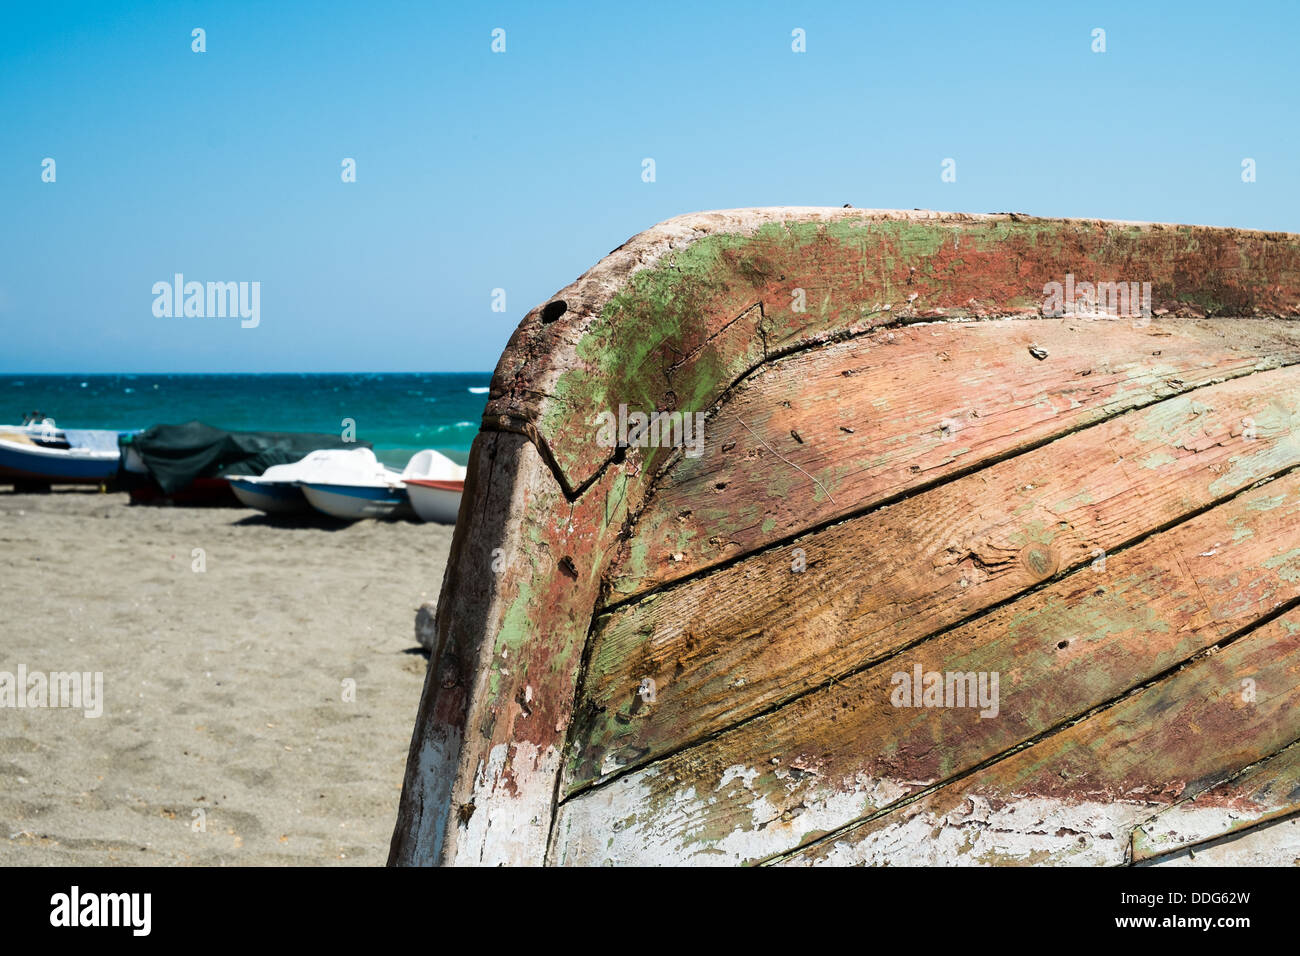 boat on beach - Stock Image